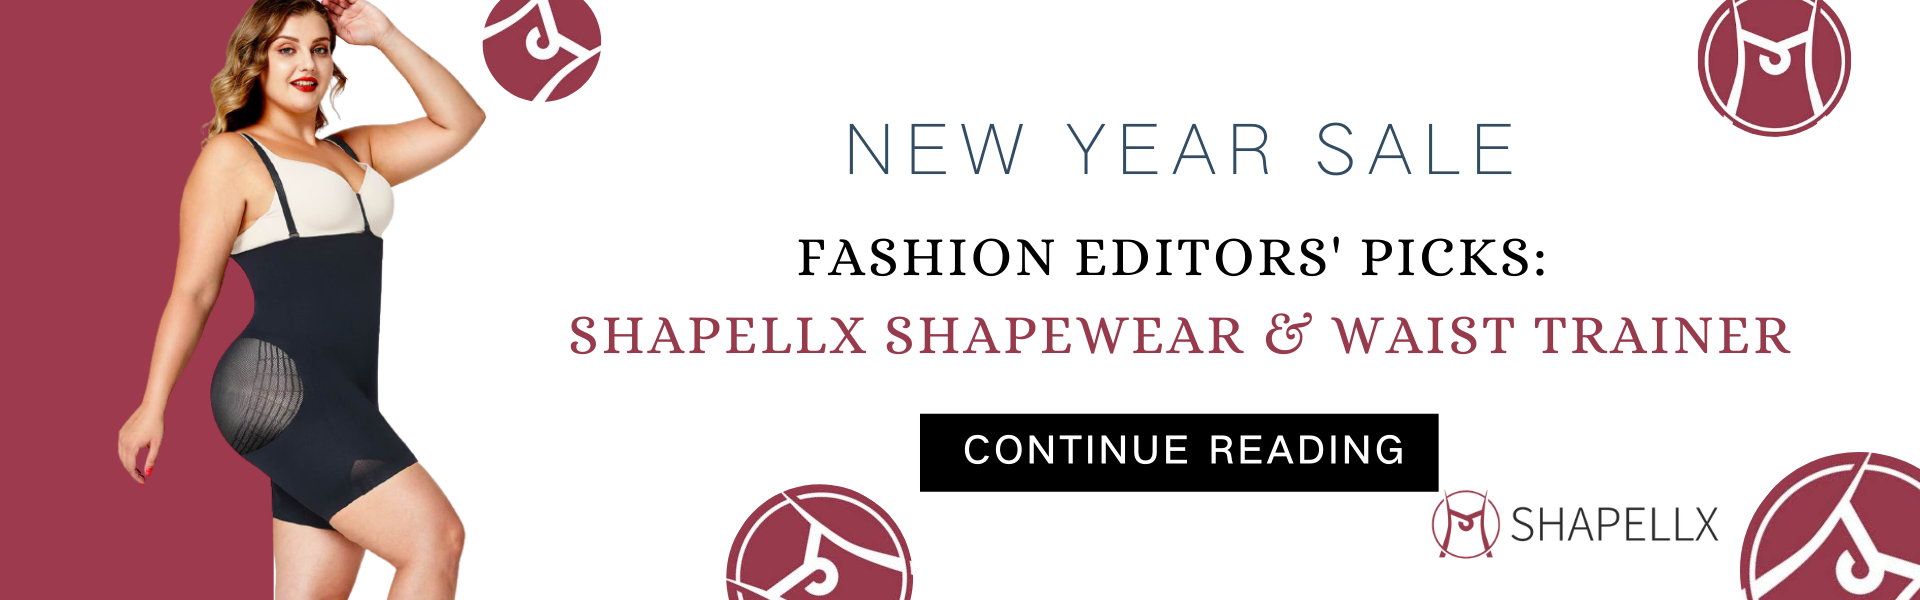 Fashion Editors' Picks: Shapellx Shapewear & Waist Trainer